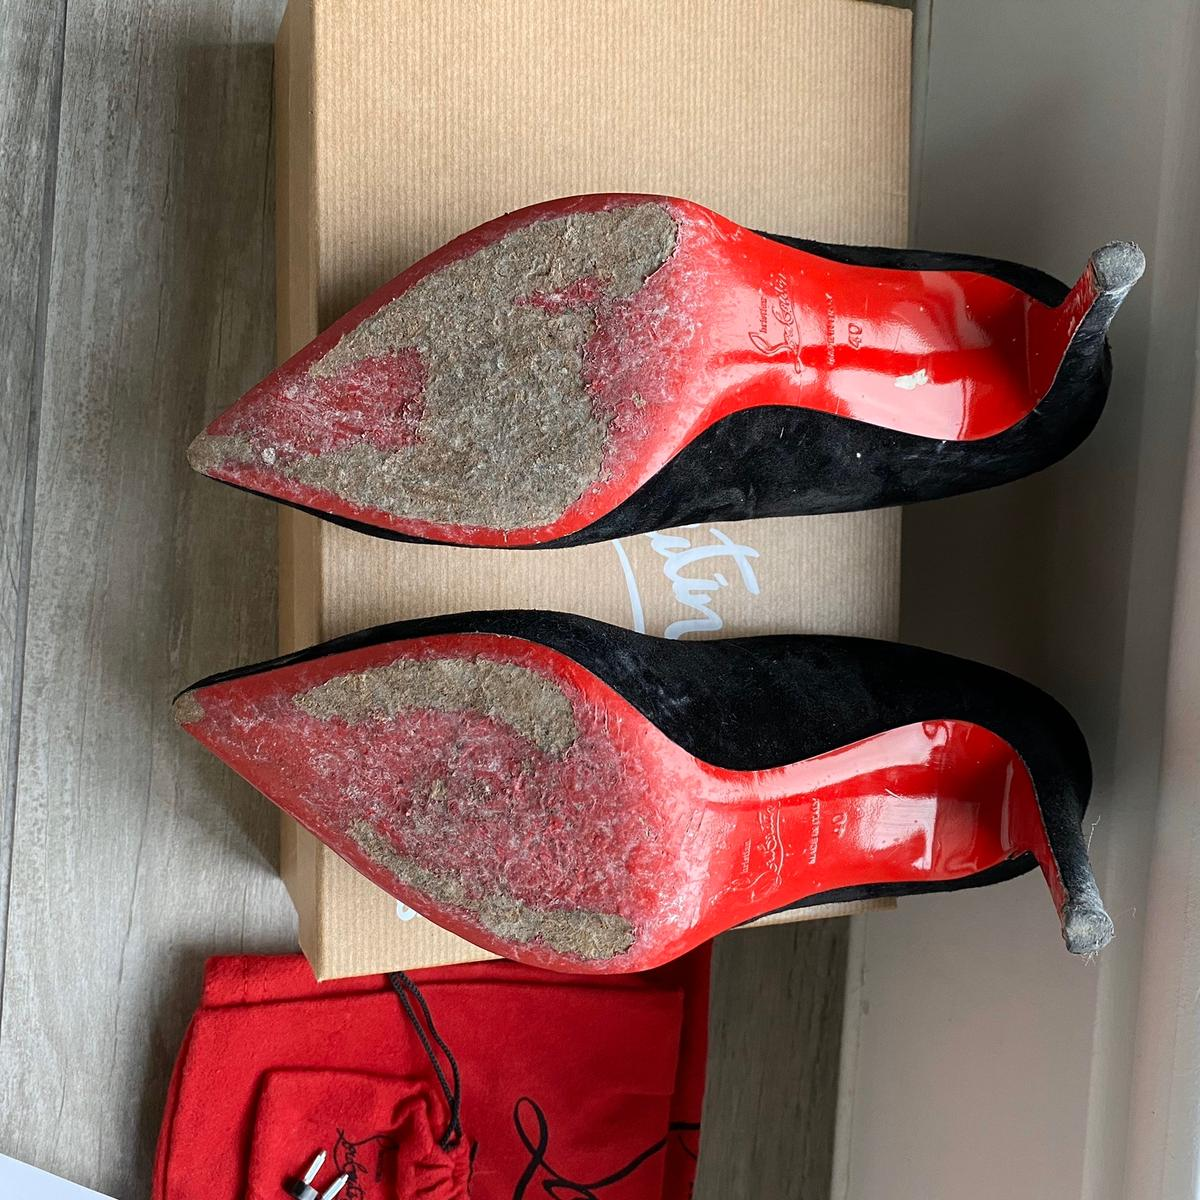 Christian Louboutin suede black heels. Size 7 EU size 40. The stem of the heel is damaged (see image) and they will need to be re-heeled. They come with a new set of heels and as they have the receipt selfridges will reheel them for free. They are in good condition. I'm moving house soo need them gone as soon as possible, please don't waste my time ! I am Open to offers!